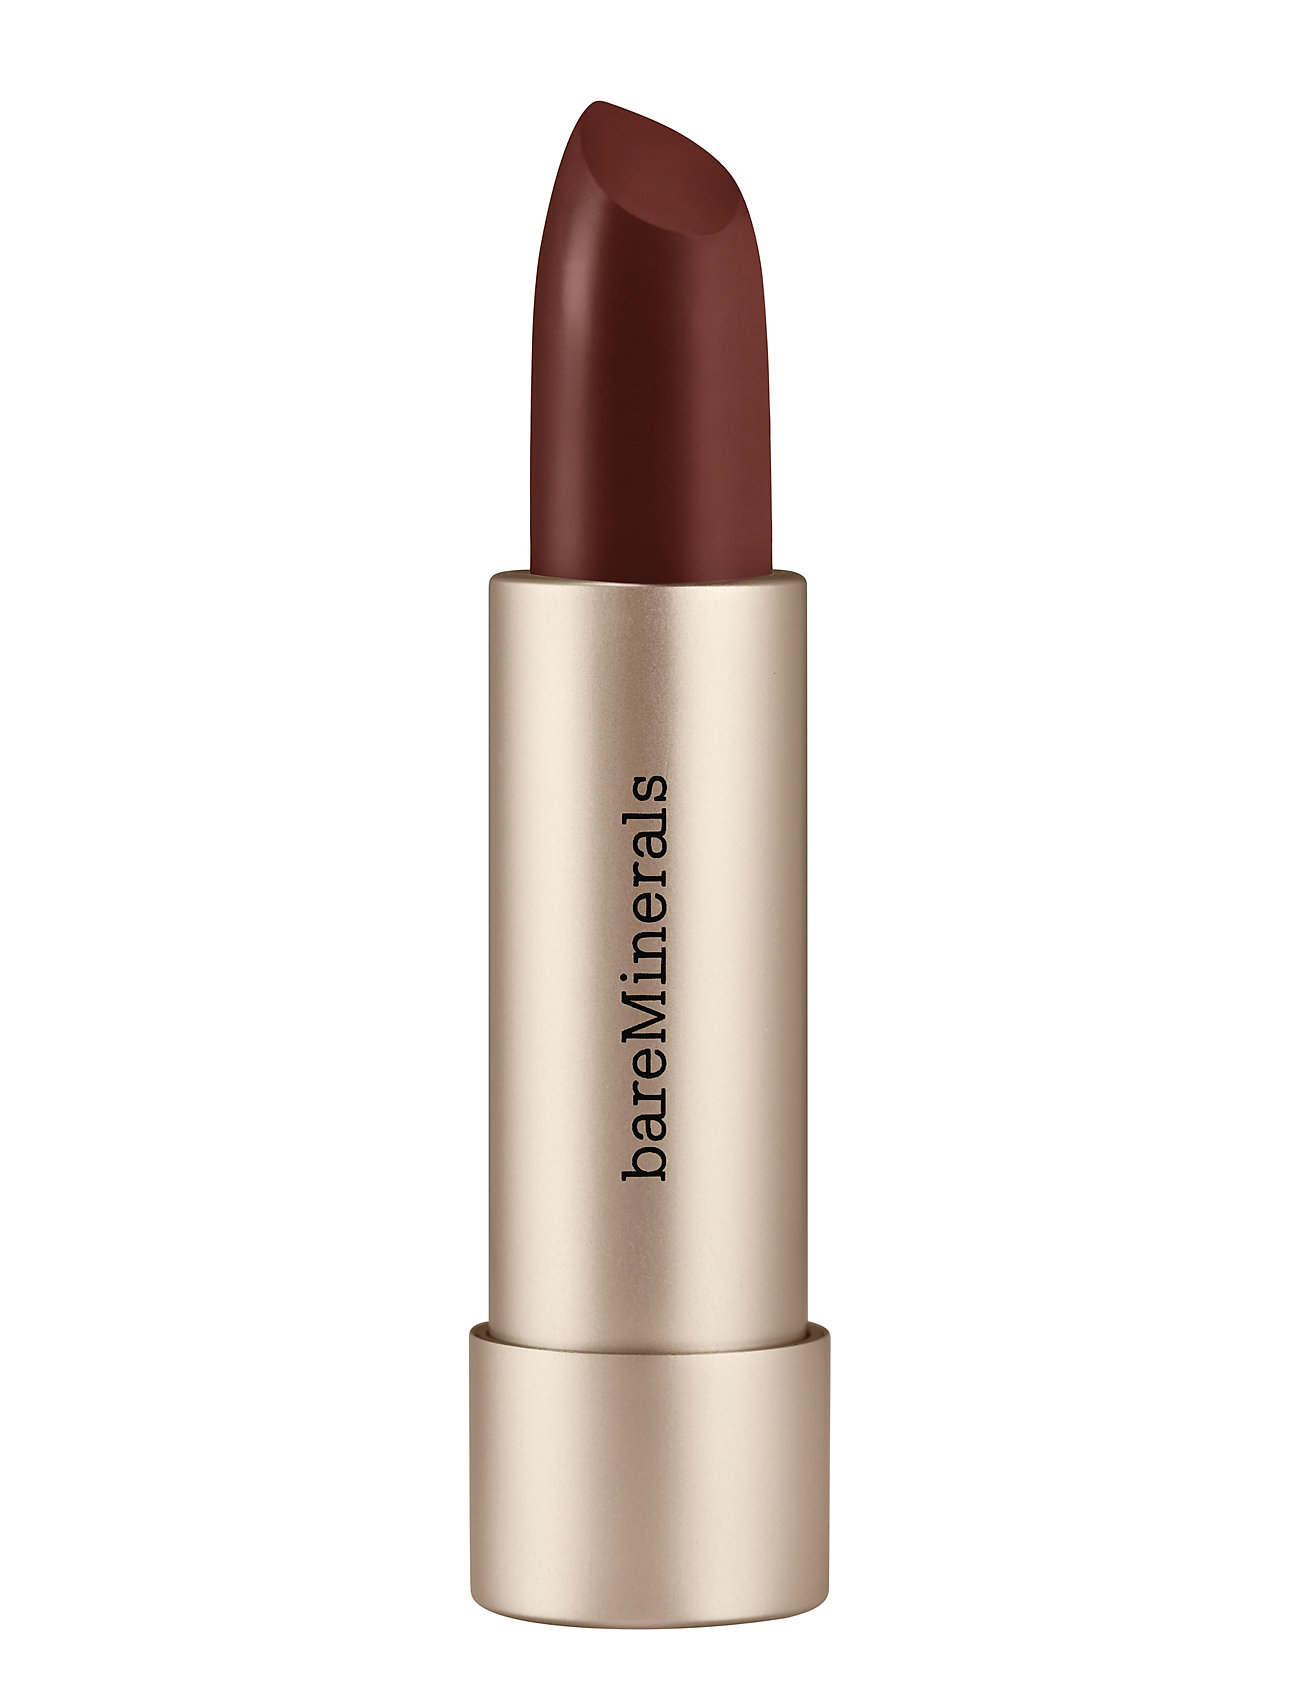 Image of Mineralist Hydra-Smoothing Lipstick Integrity Læbestift Makeup BareMinerals (3418623905)